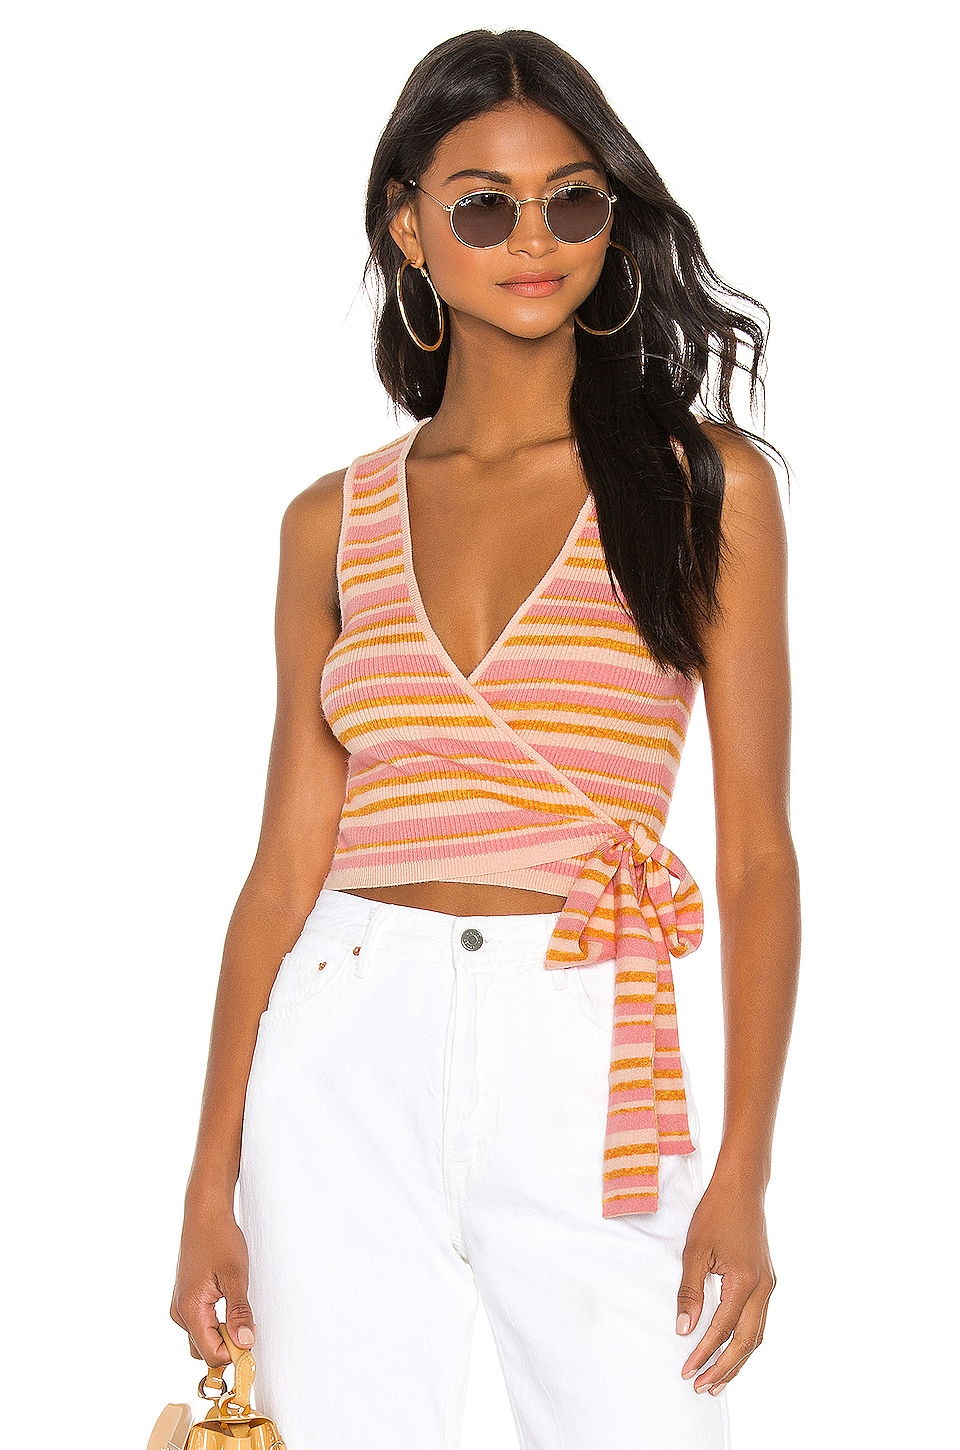 L'Academie Gina Wrap in Pink Lemon Stripe